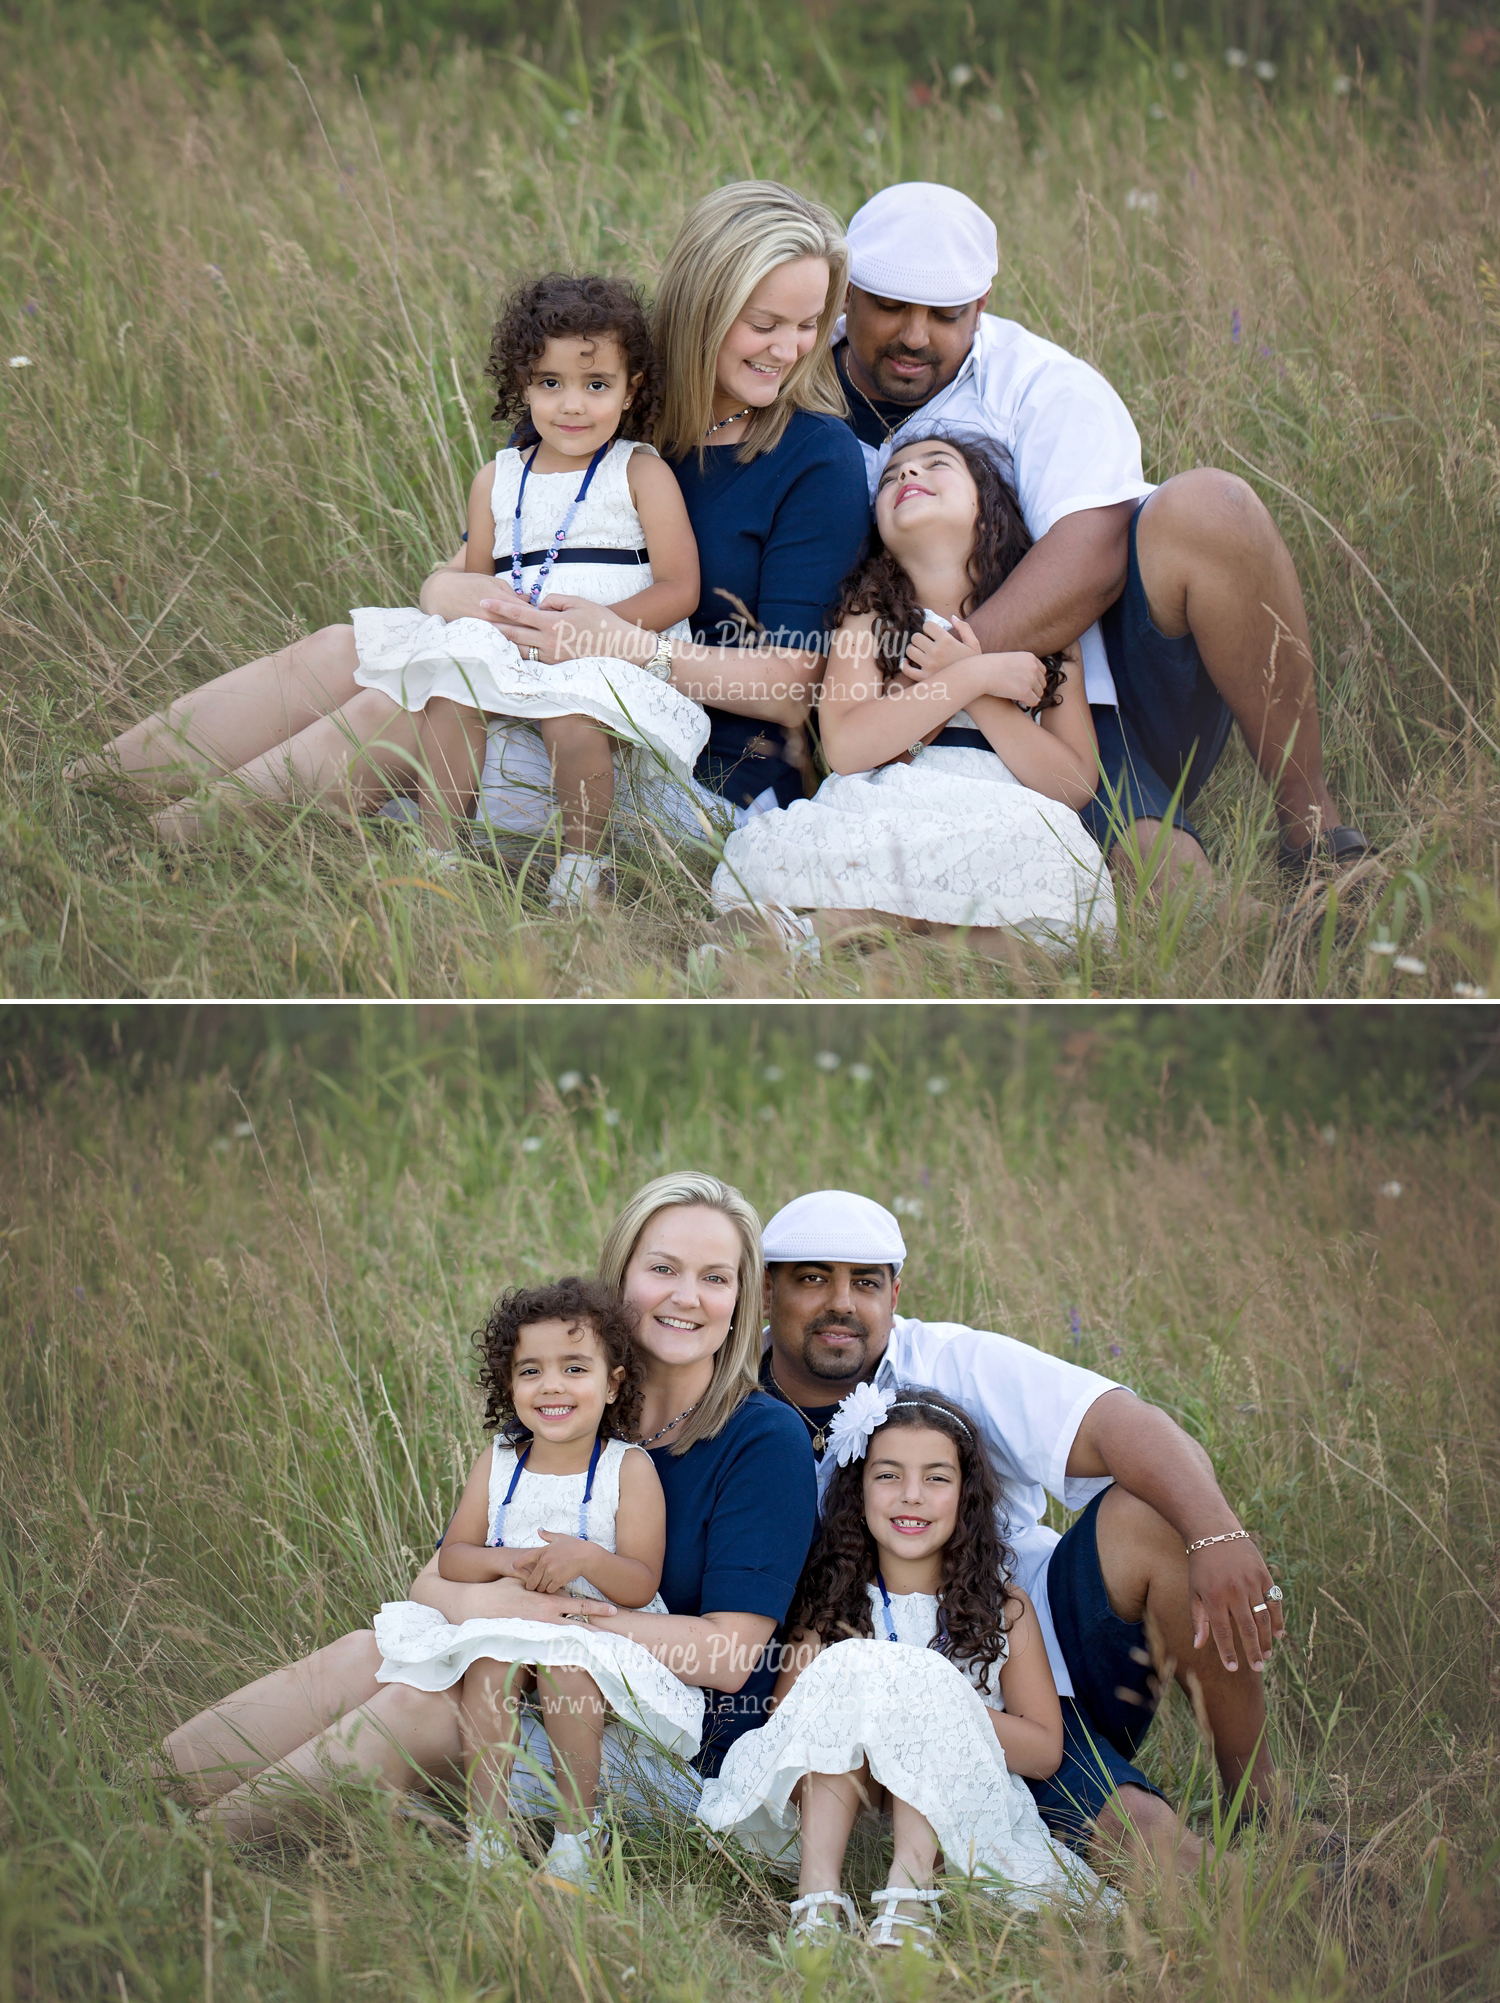 Kalimootoo - Barrie Family and Child Photographer 3